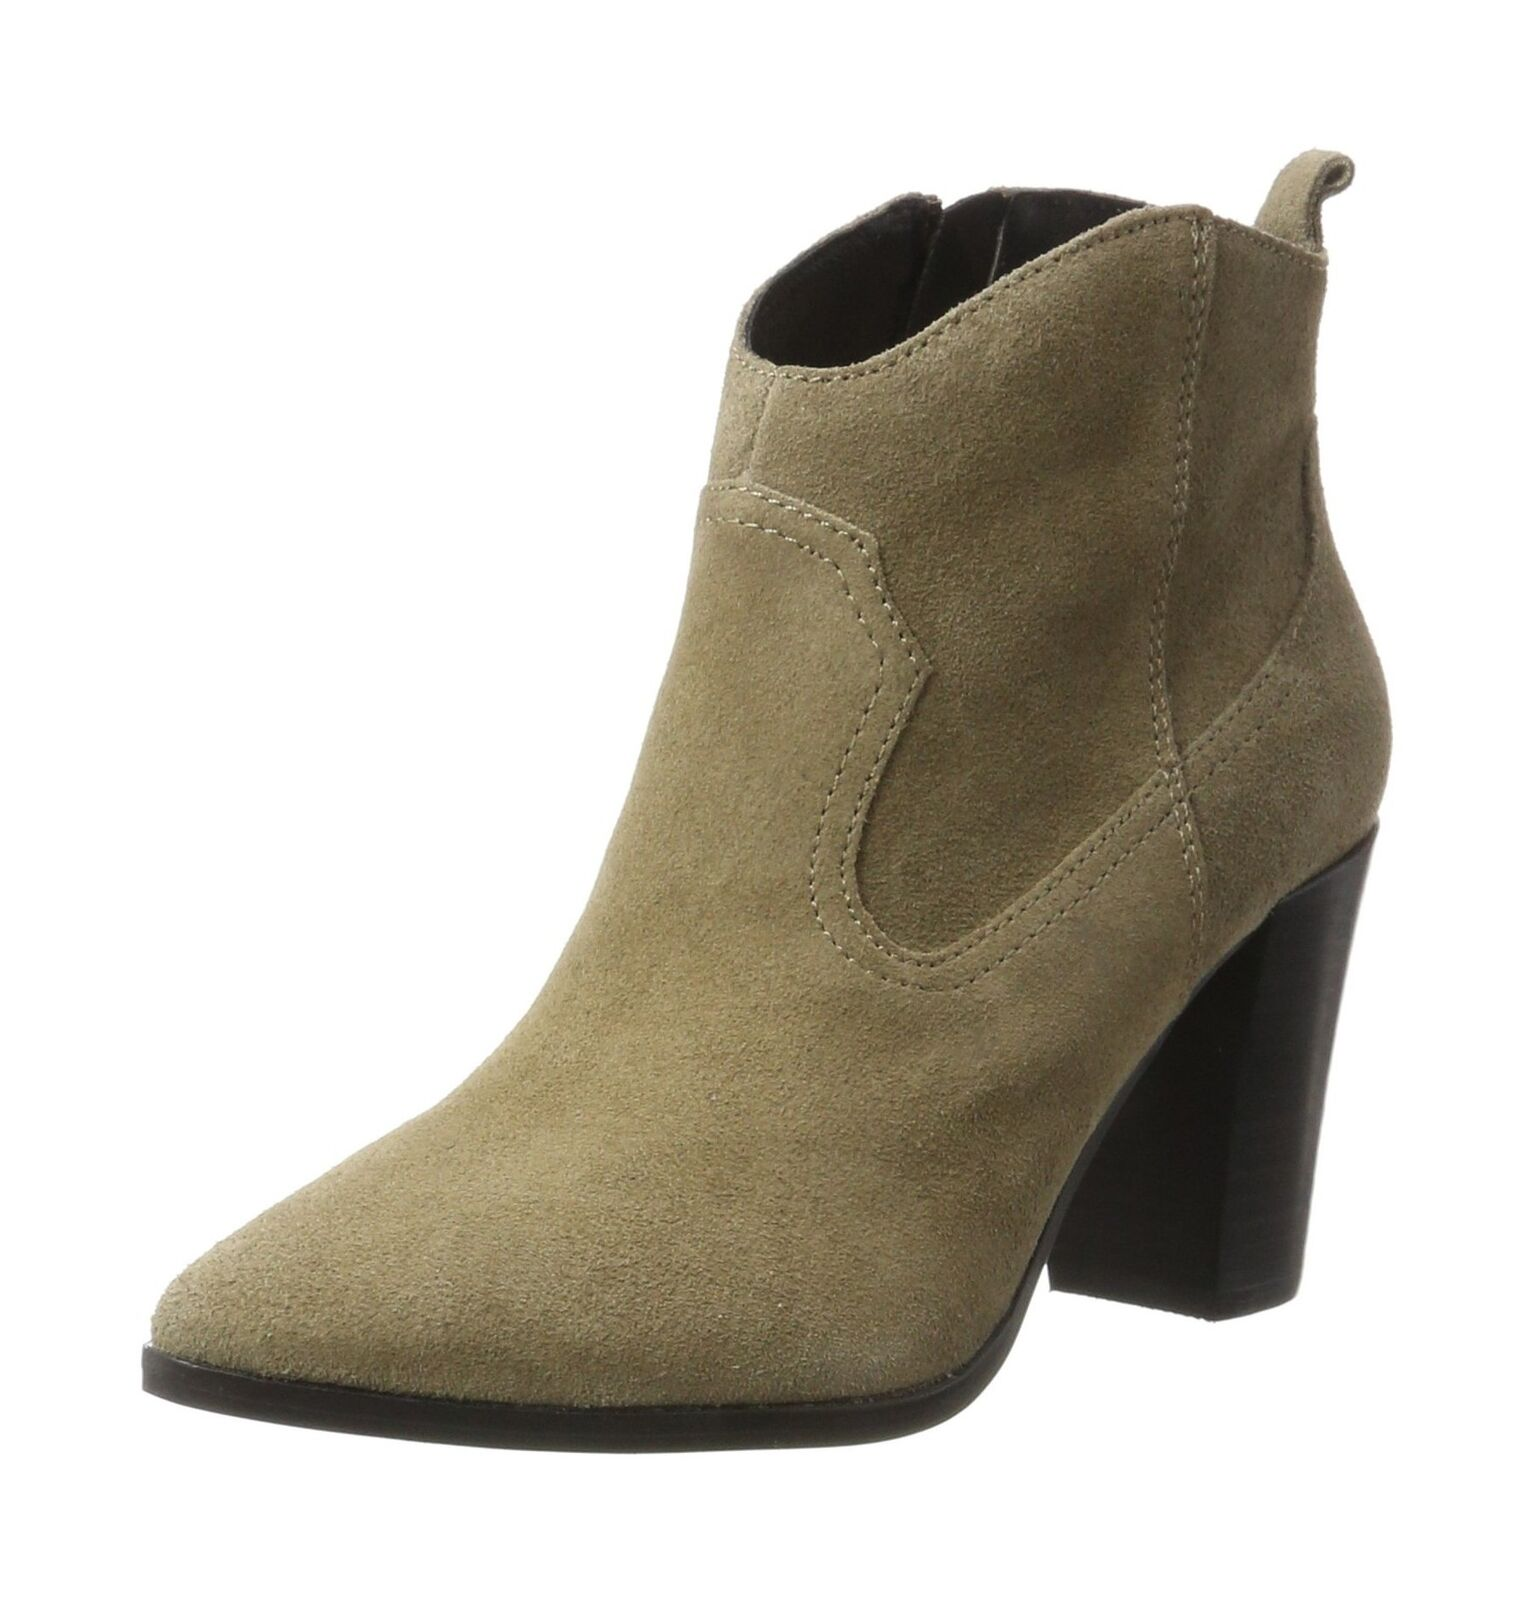 Buffalo Women's 414-9489 Cow Suede Boots Grey (Taupe 01 00) 4.5 UK